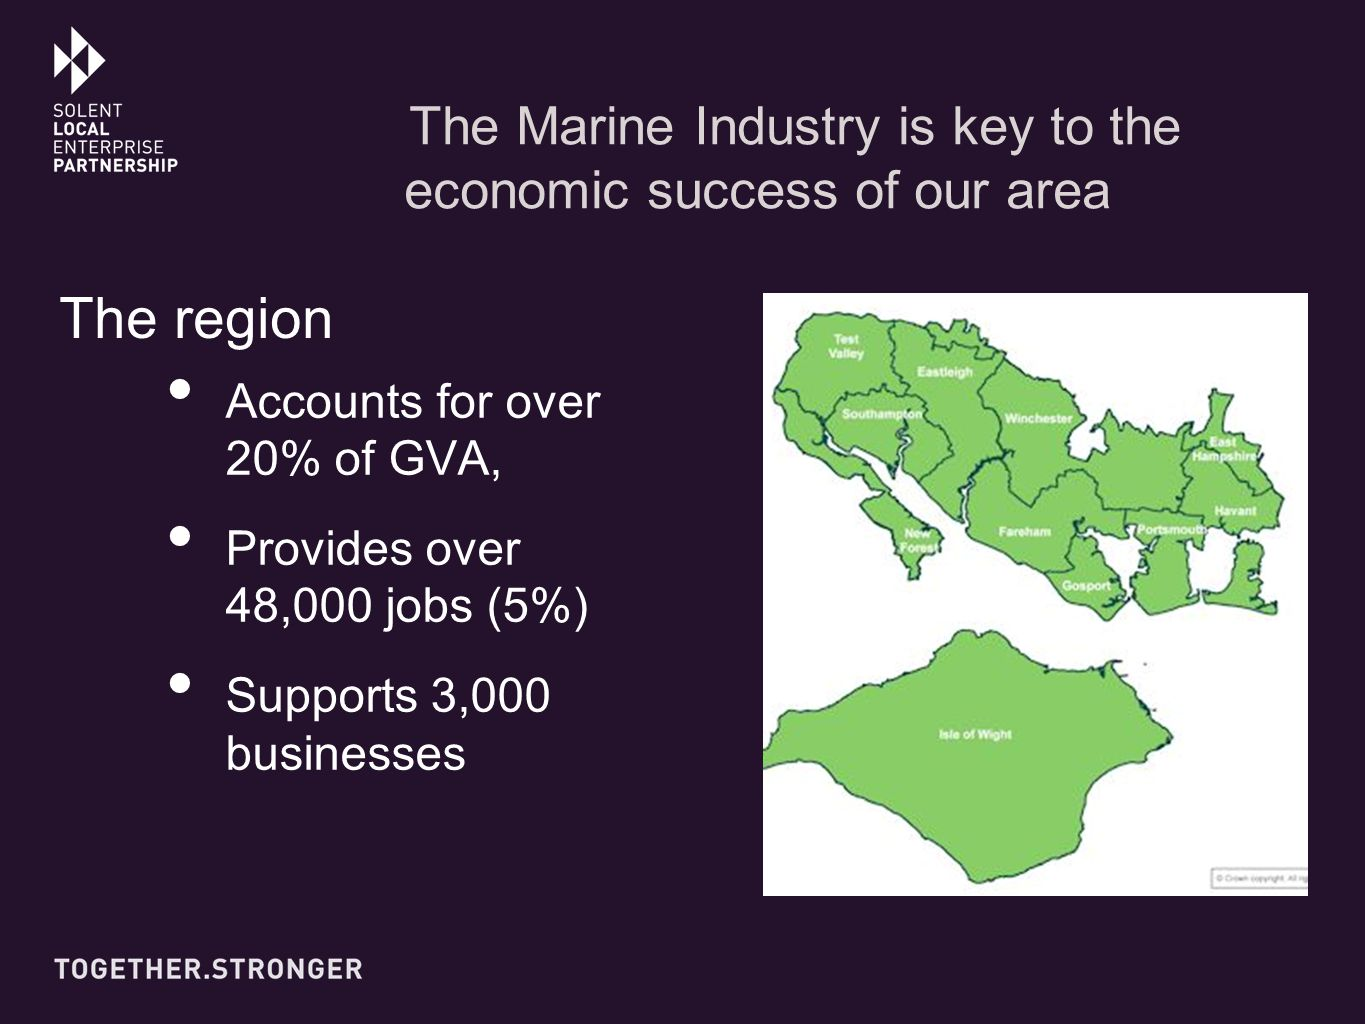 The Marine Industry is key to the economic success of our area Accounts for over 20% of GVA, Provides over 48,000 jobs (5%) Supports 3,000 businesses The region